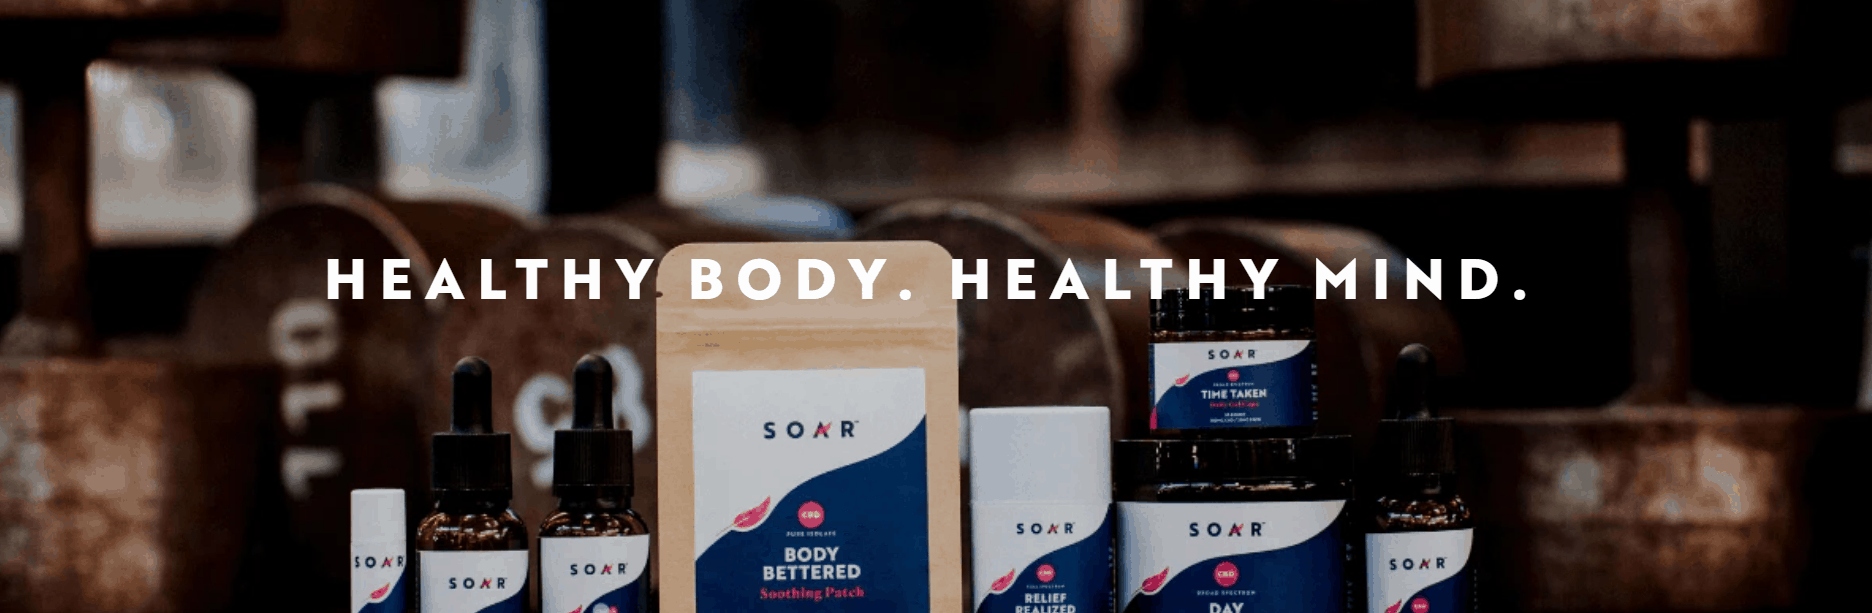 Soar CBD Coupons Our Products